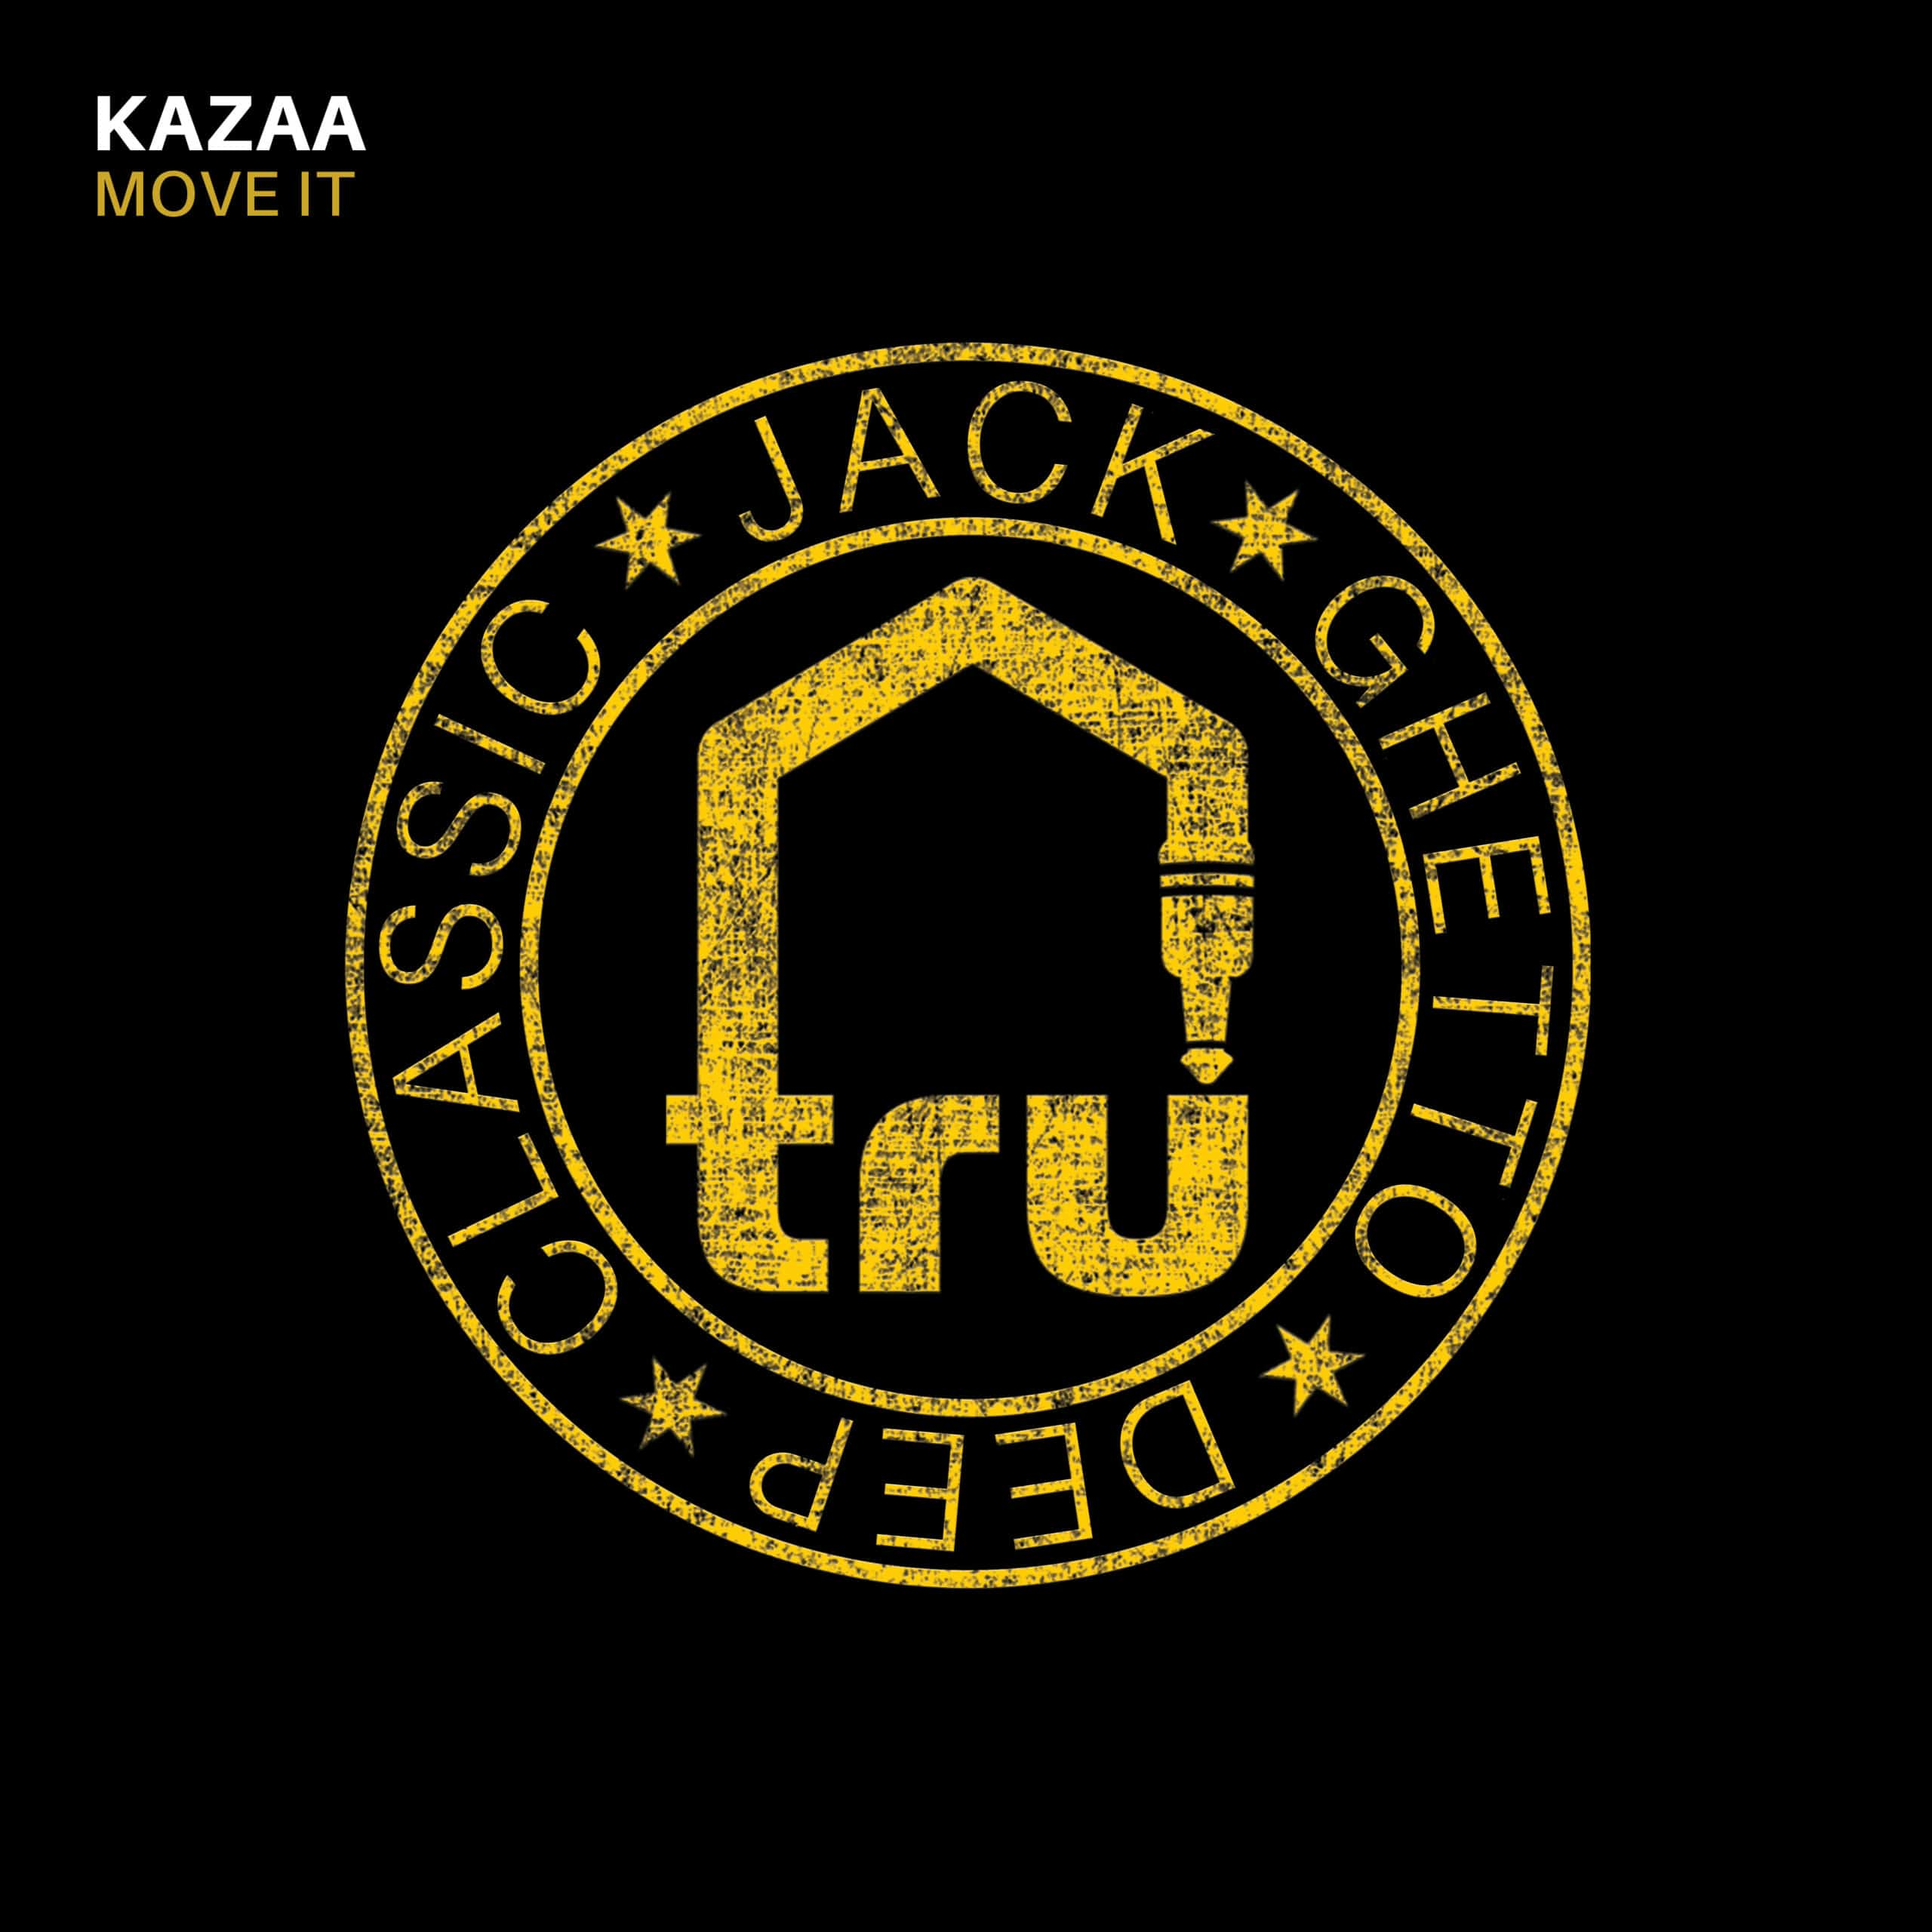 TRU058 – Kazaa – Move It